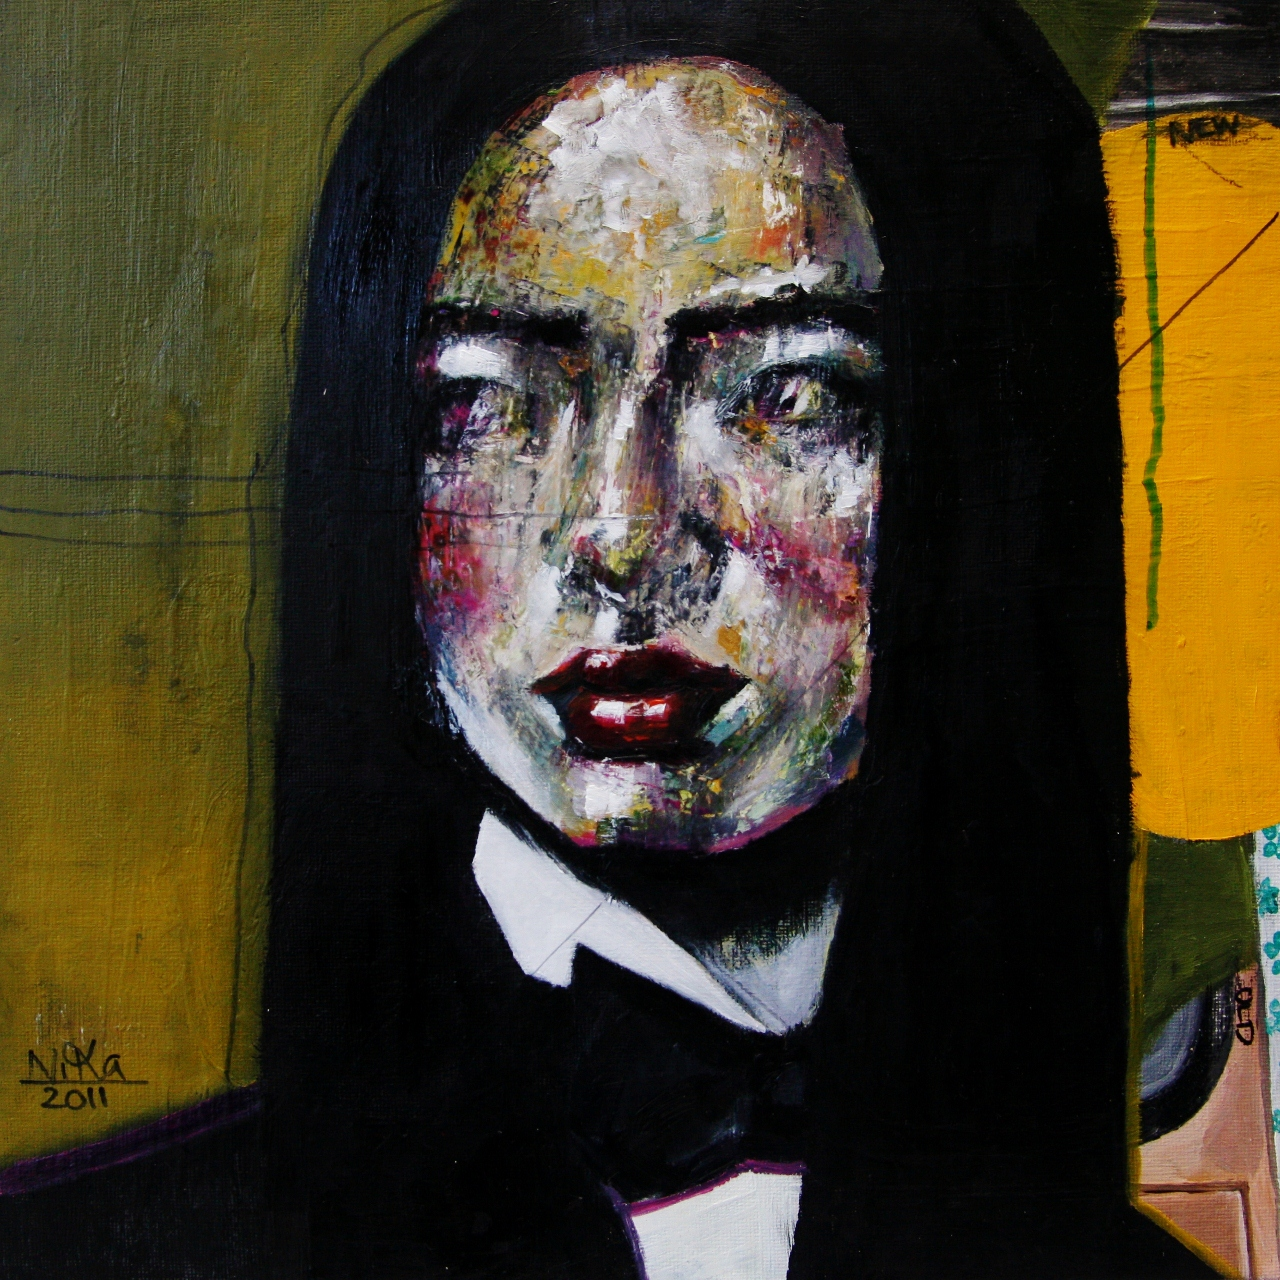 Subcutaneous 2. Oil on canvas, 30x30 cm, 2011.